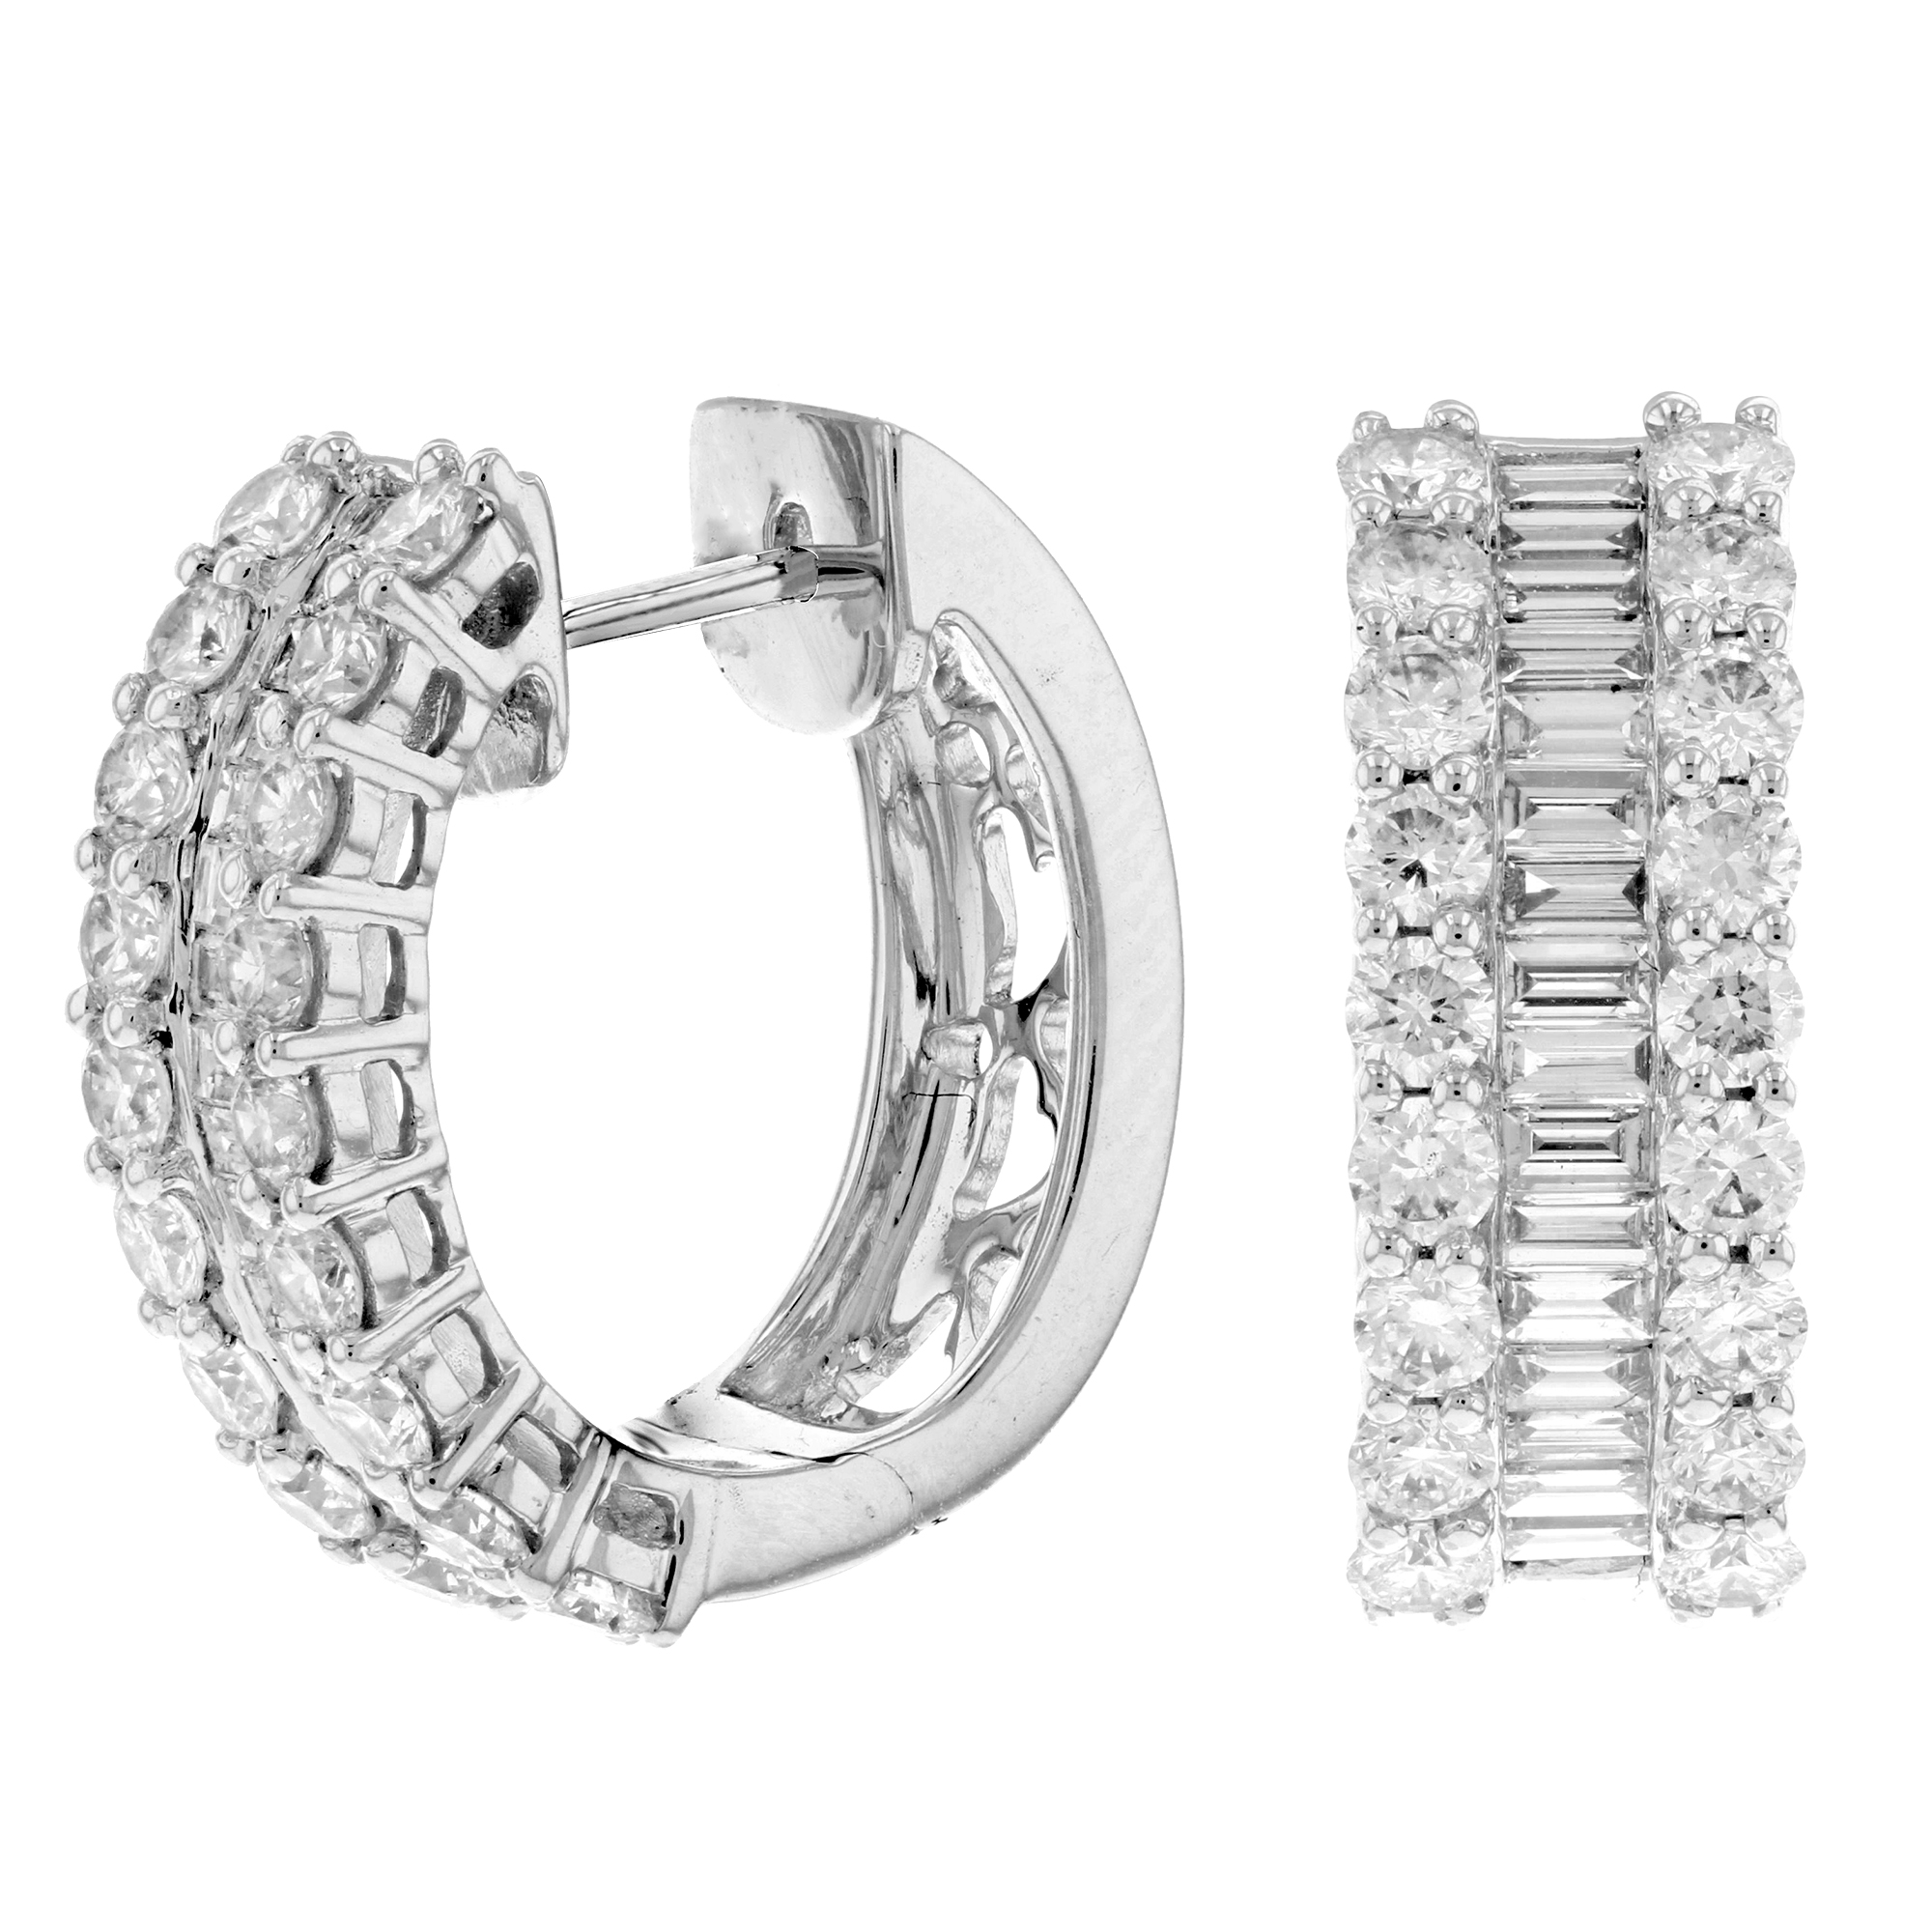 View 3.20ctw Diamond Hoop Earring in 18k White Gold